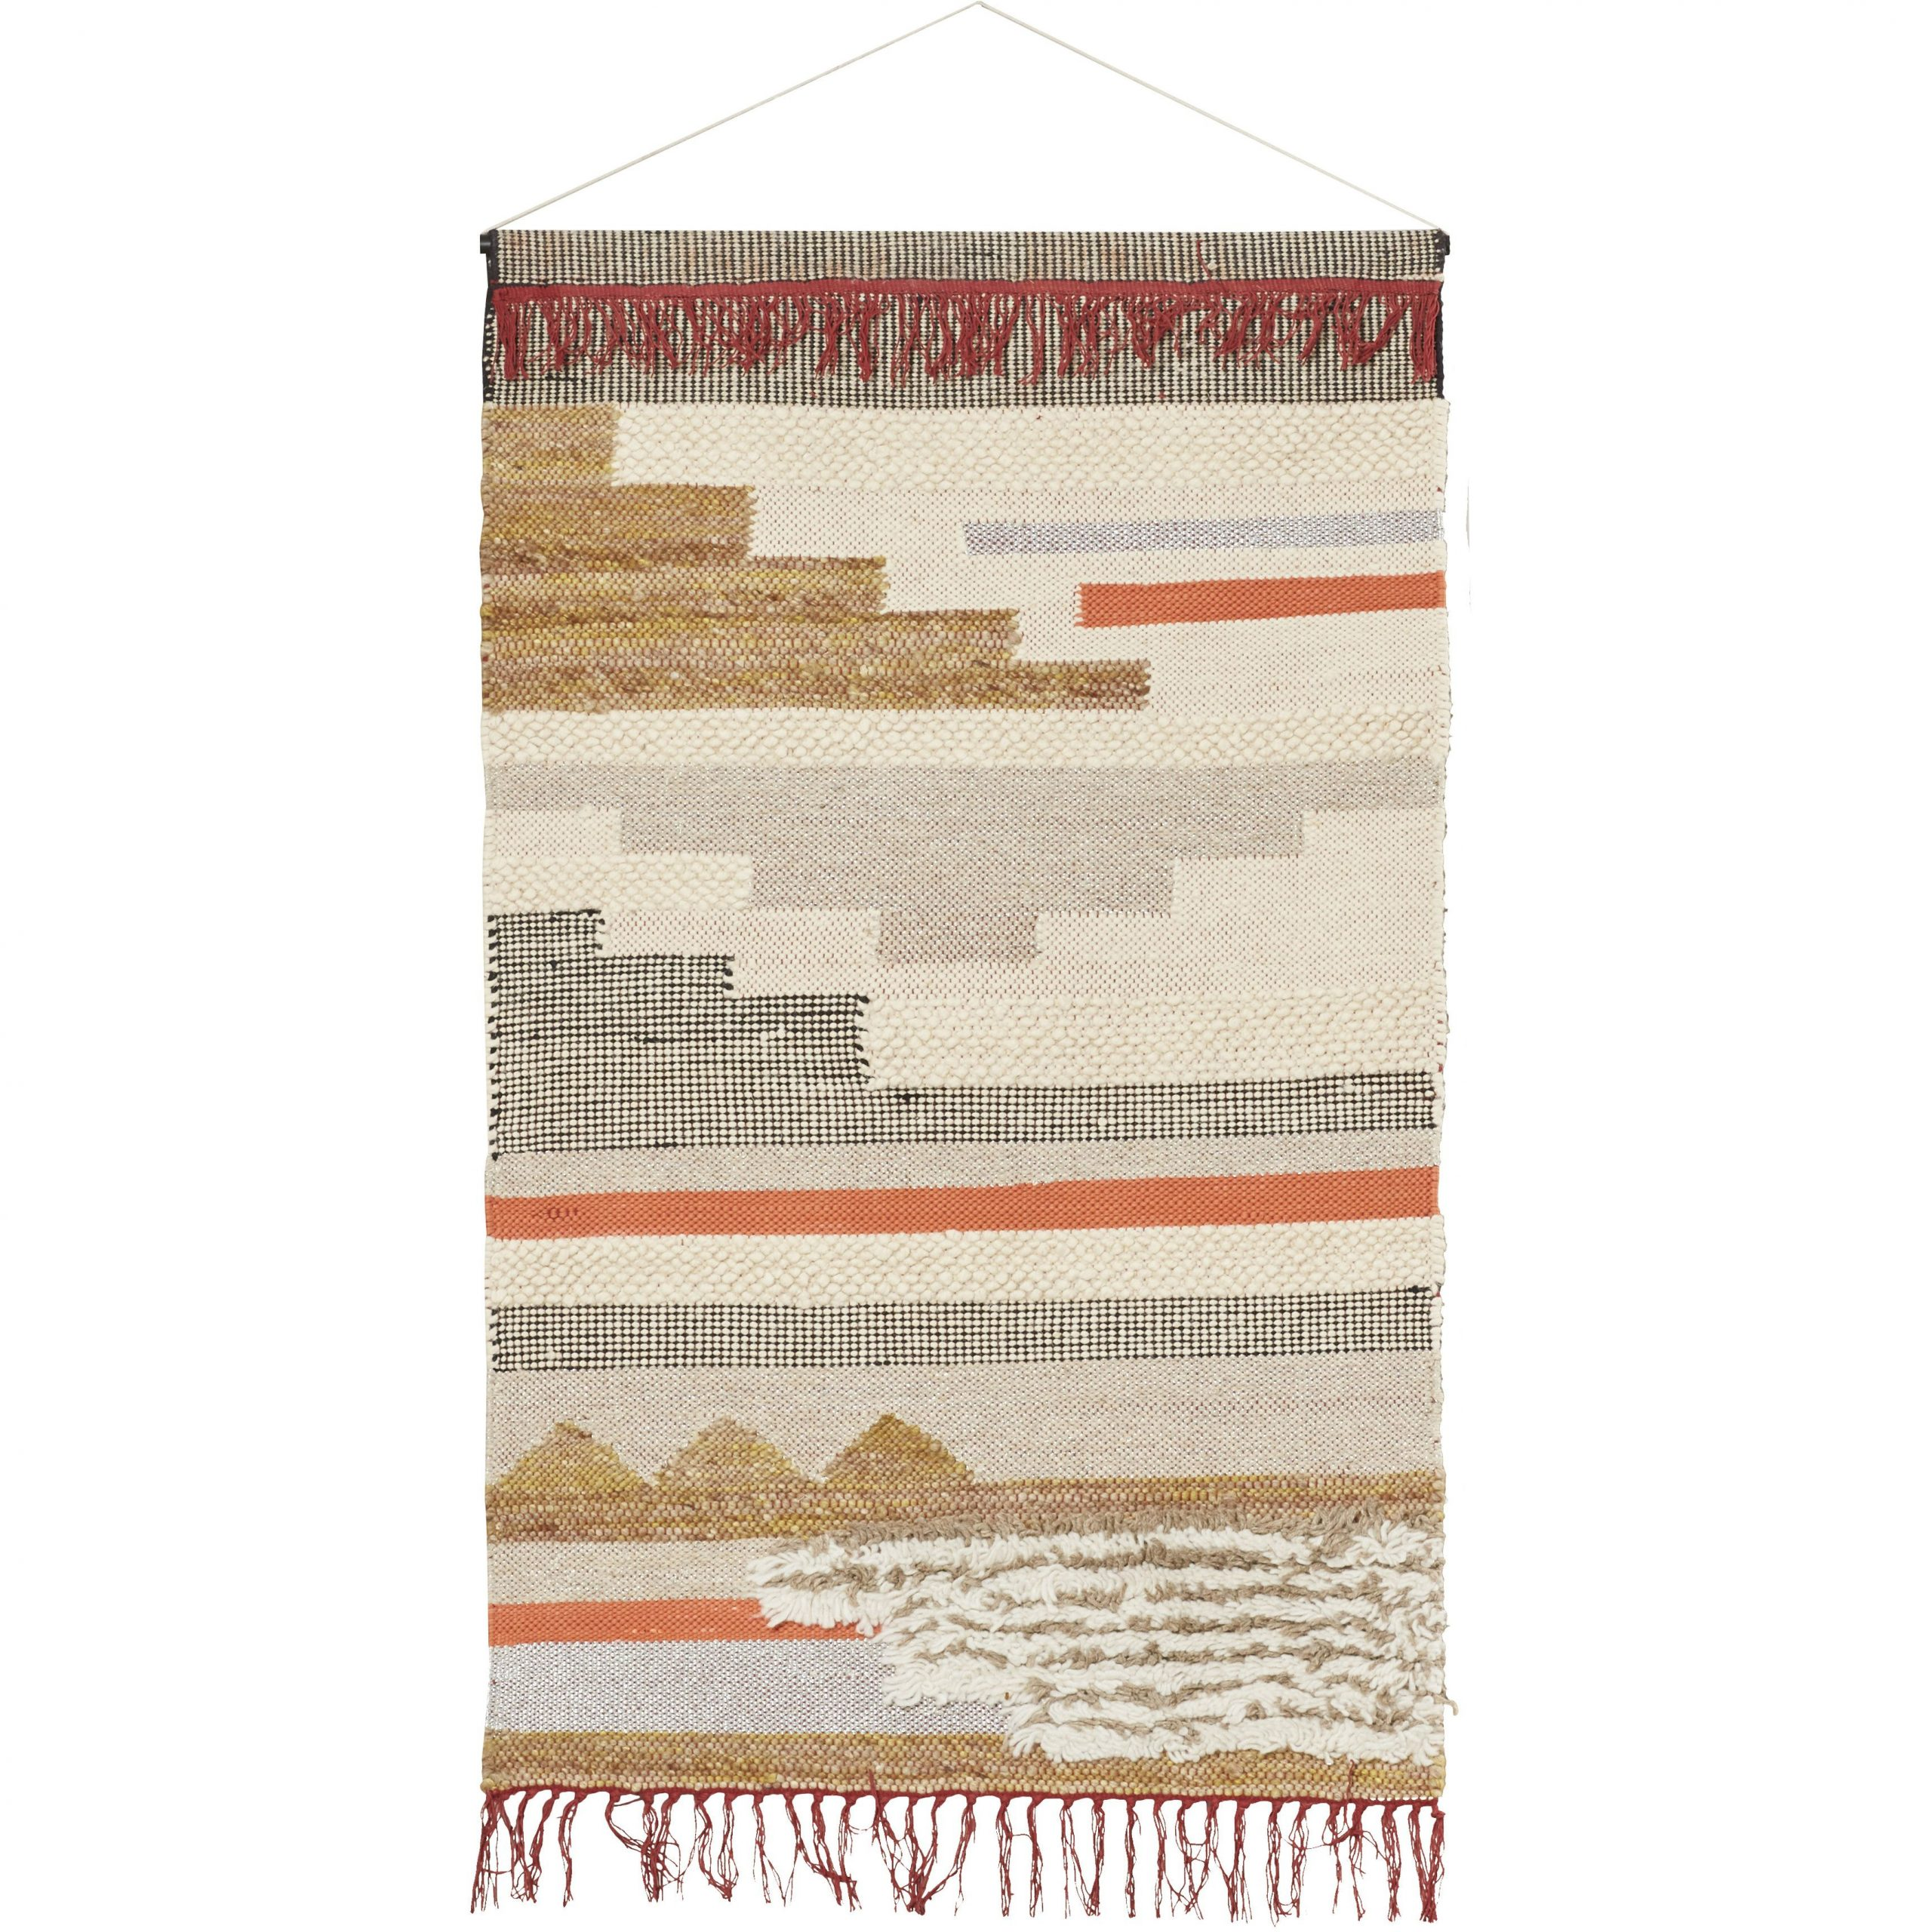 Blended Fabric Wall Hanging With Hanging Accessories Throughout Current Blended Fabric Wall Hangings (View 5 of 20)